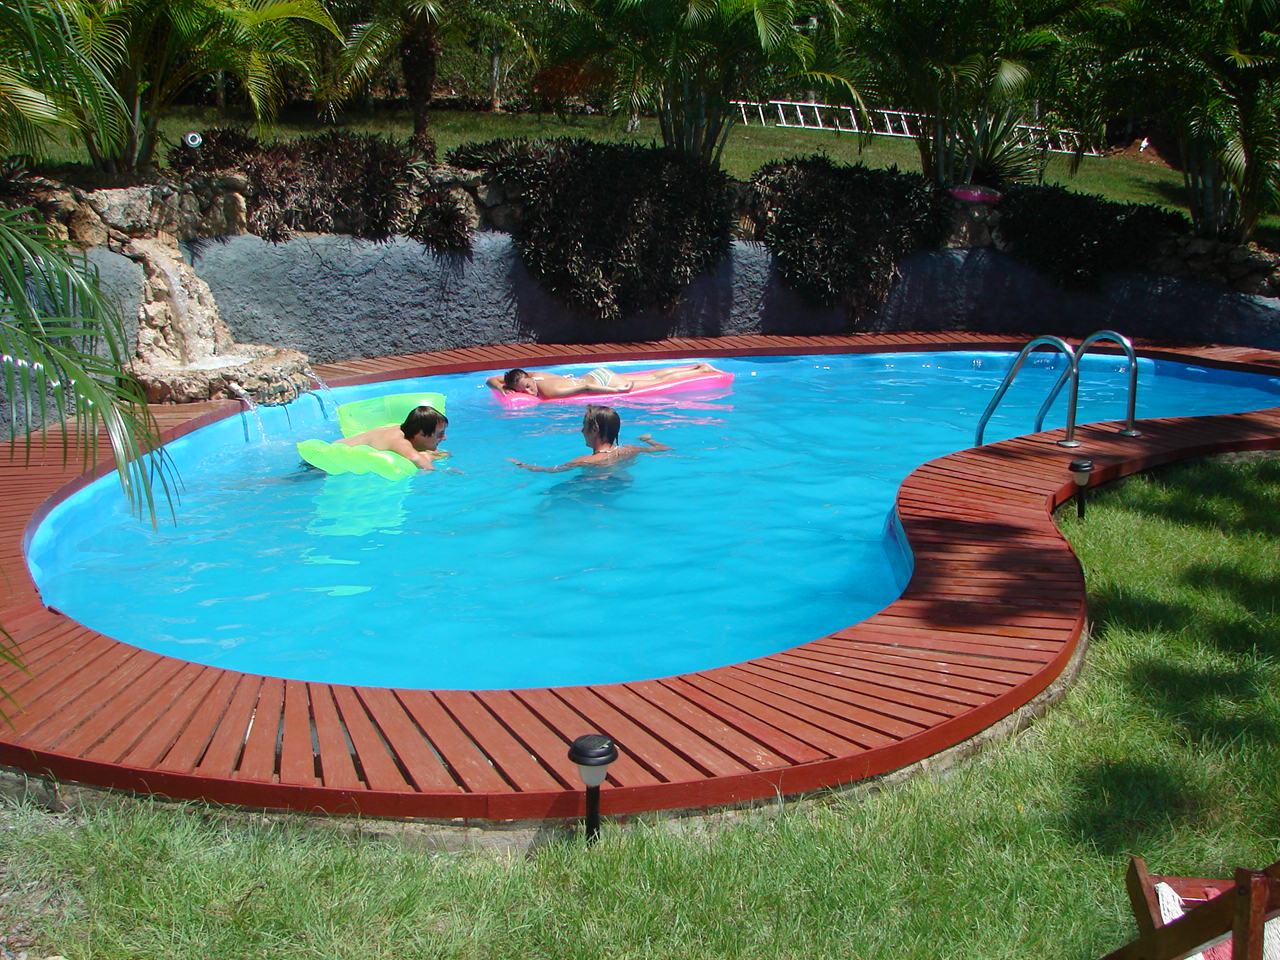 Garden Design Ideas With Swimming Pool - Home Garden Ideas